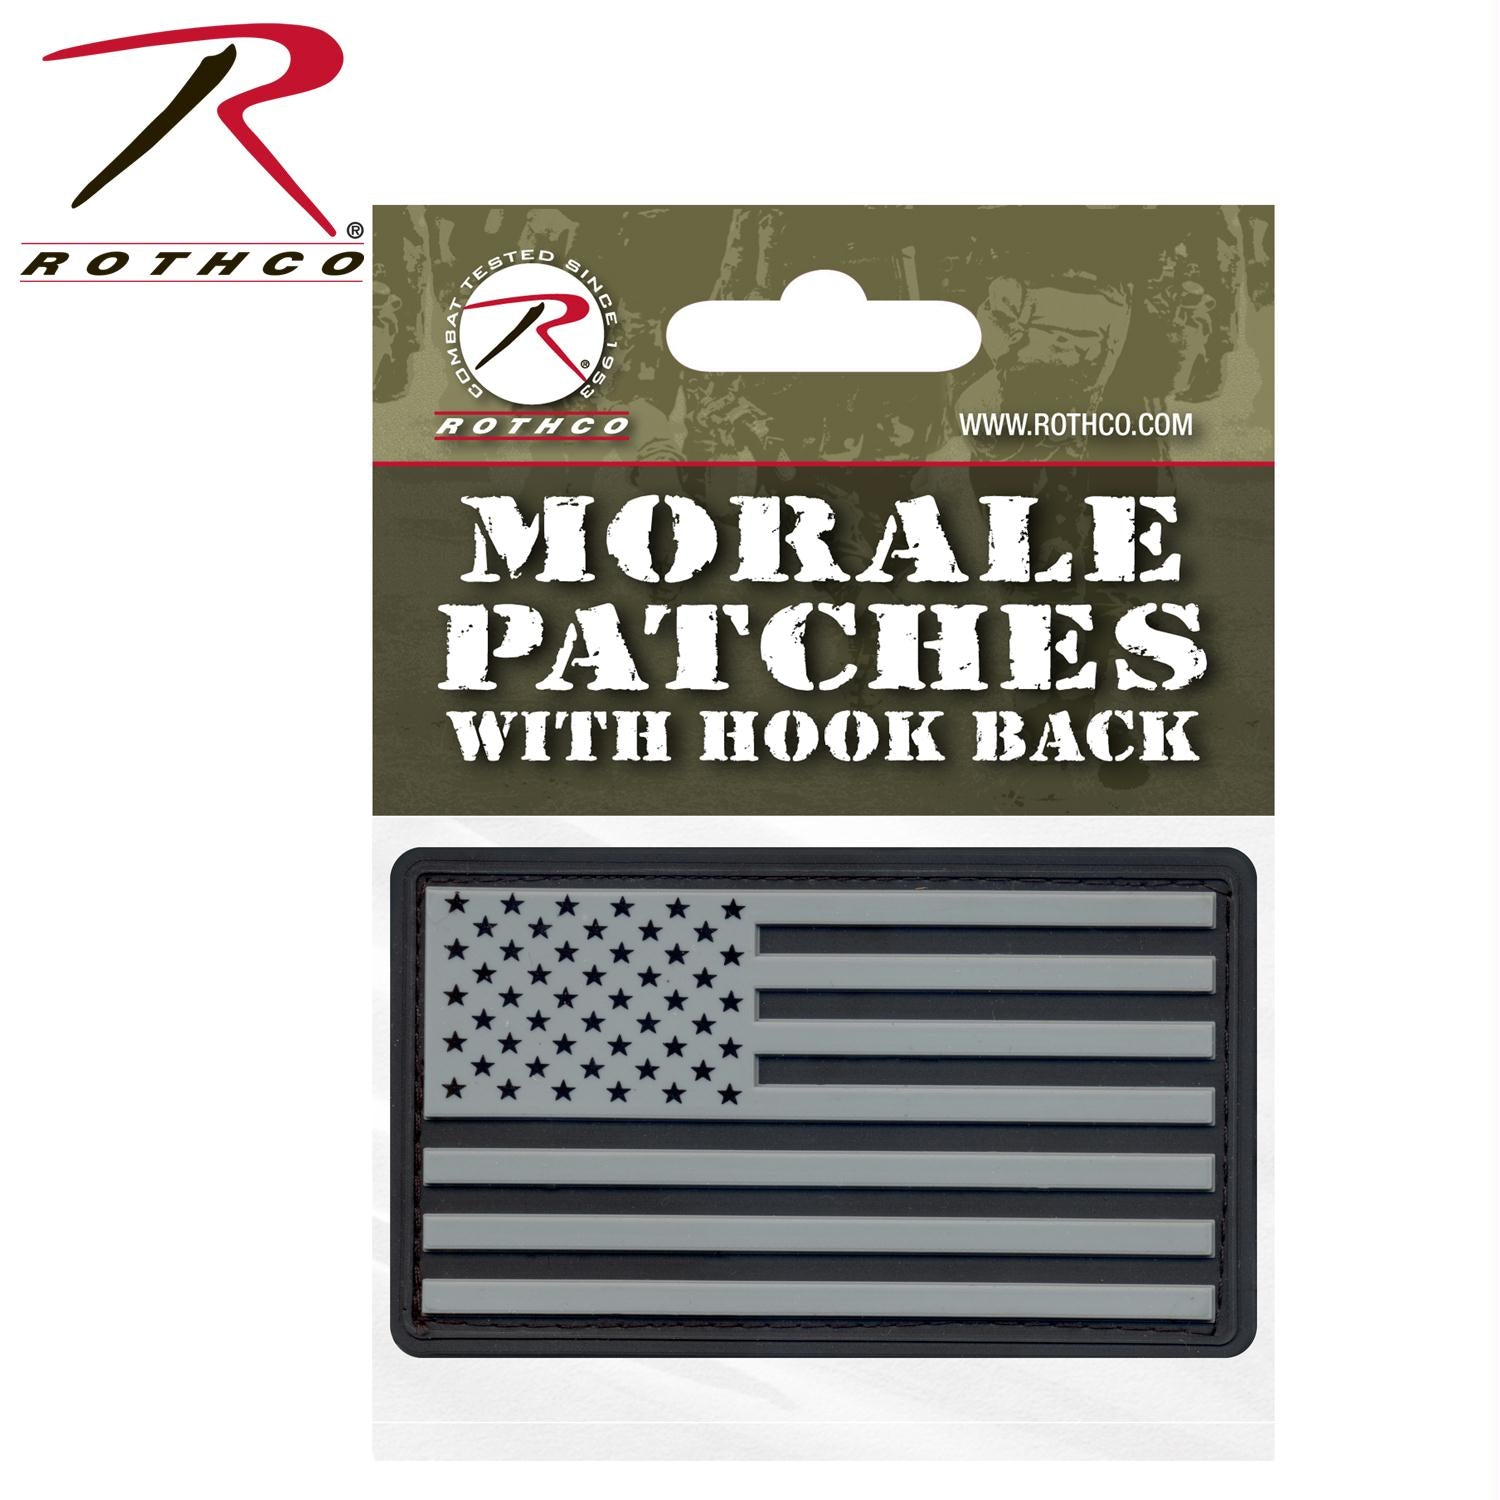 Rothco PVC US Flag Patch With Hook Back - Black / Silver / Header Card